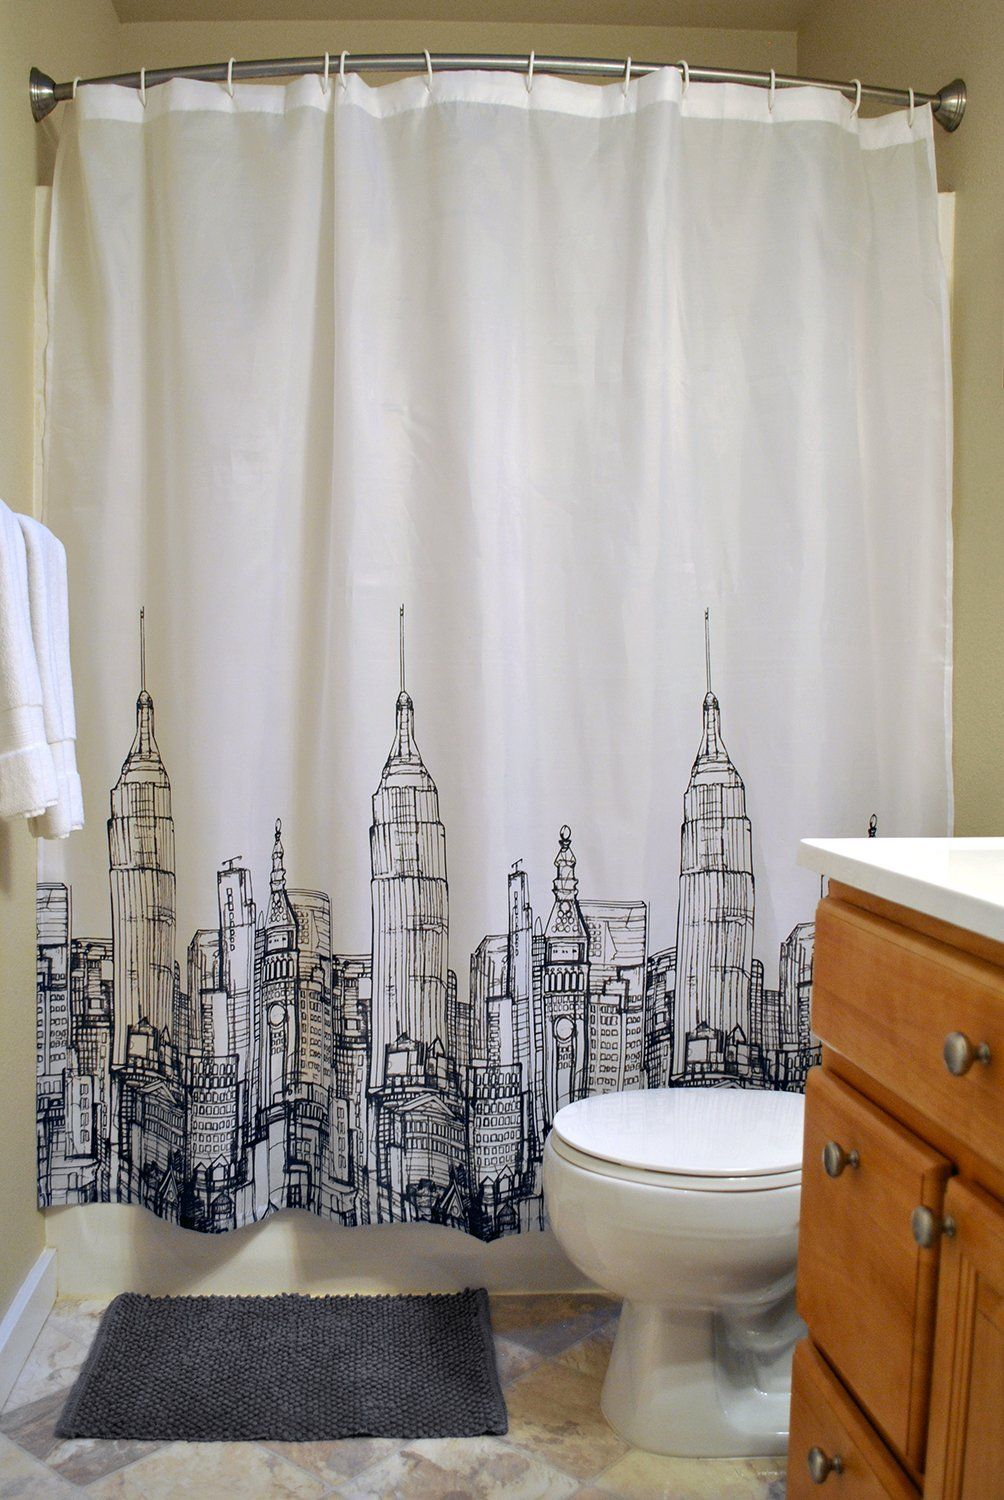 Complete Bathroom Sets With Shower Curtains: A Budget Friendly ...